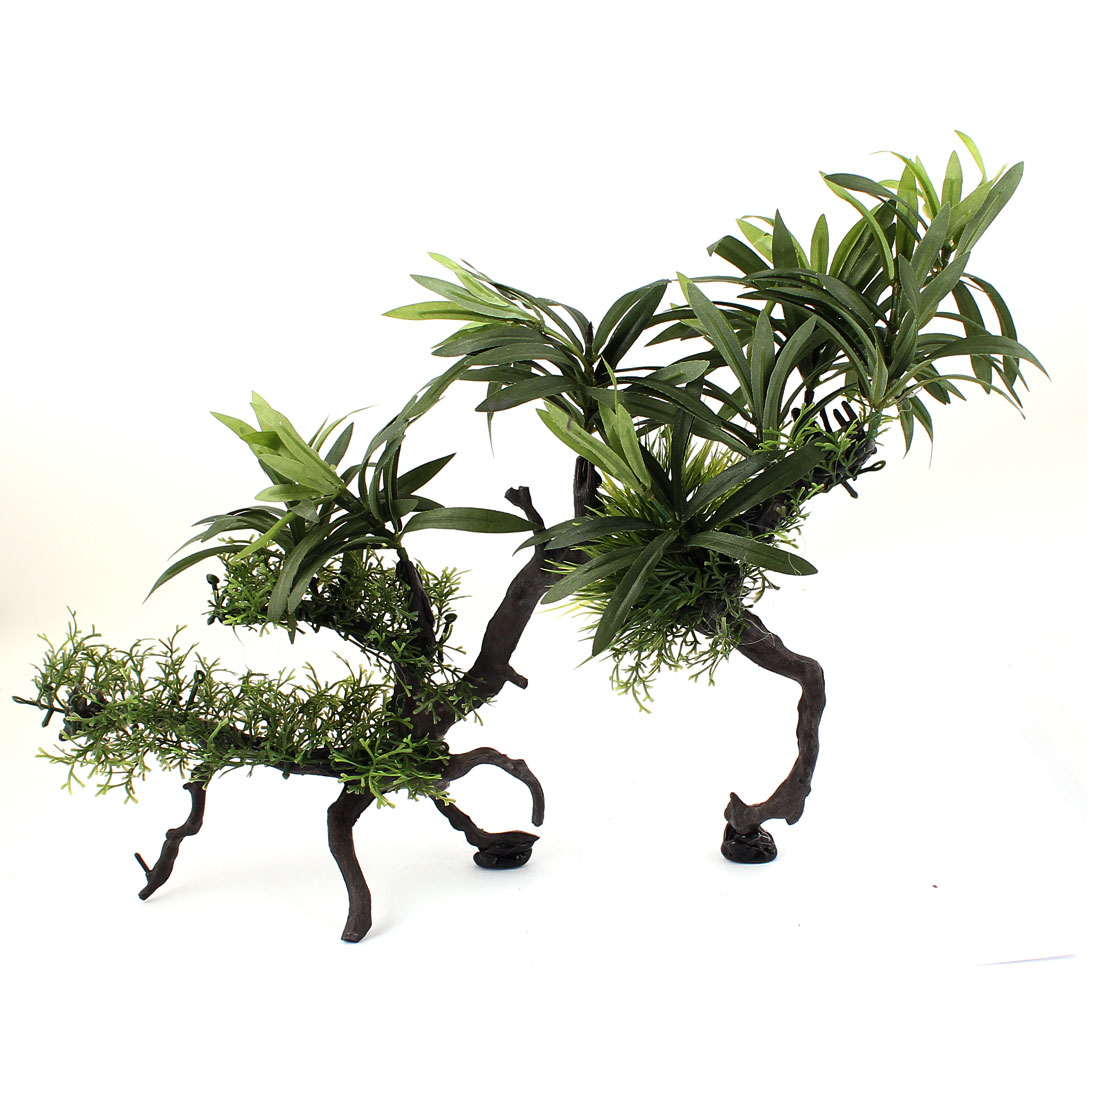 Green Plastic Artificial Manmade Decoration Ornament Floating Underwater Aquascaping Tree Plant for Aquarium Fish Tank